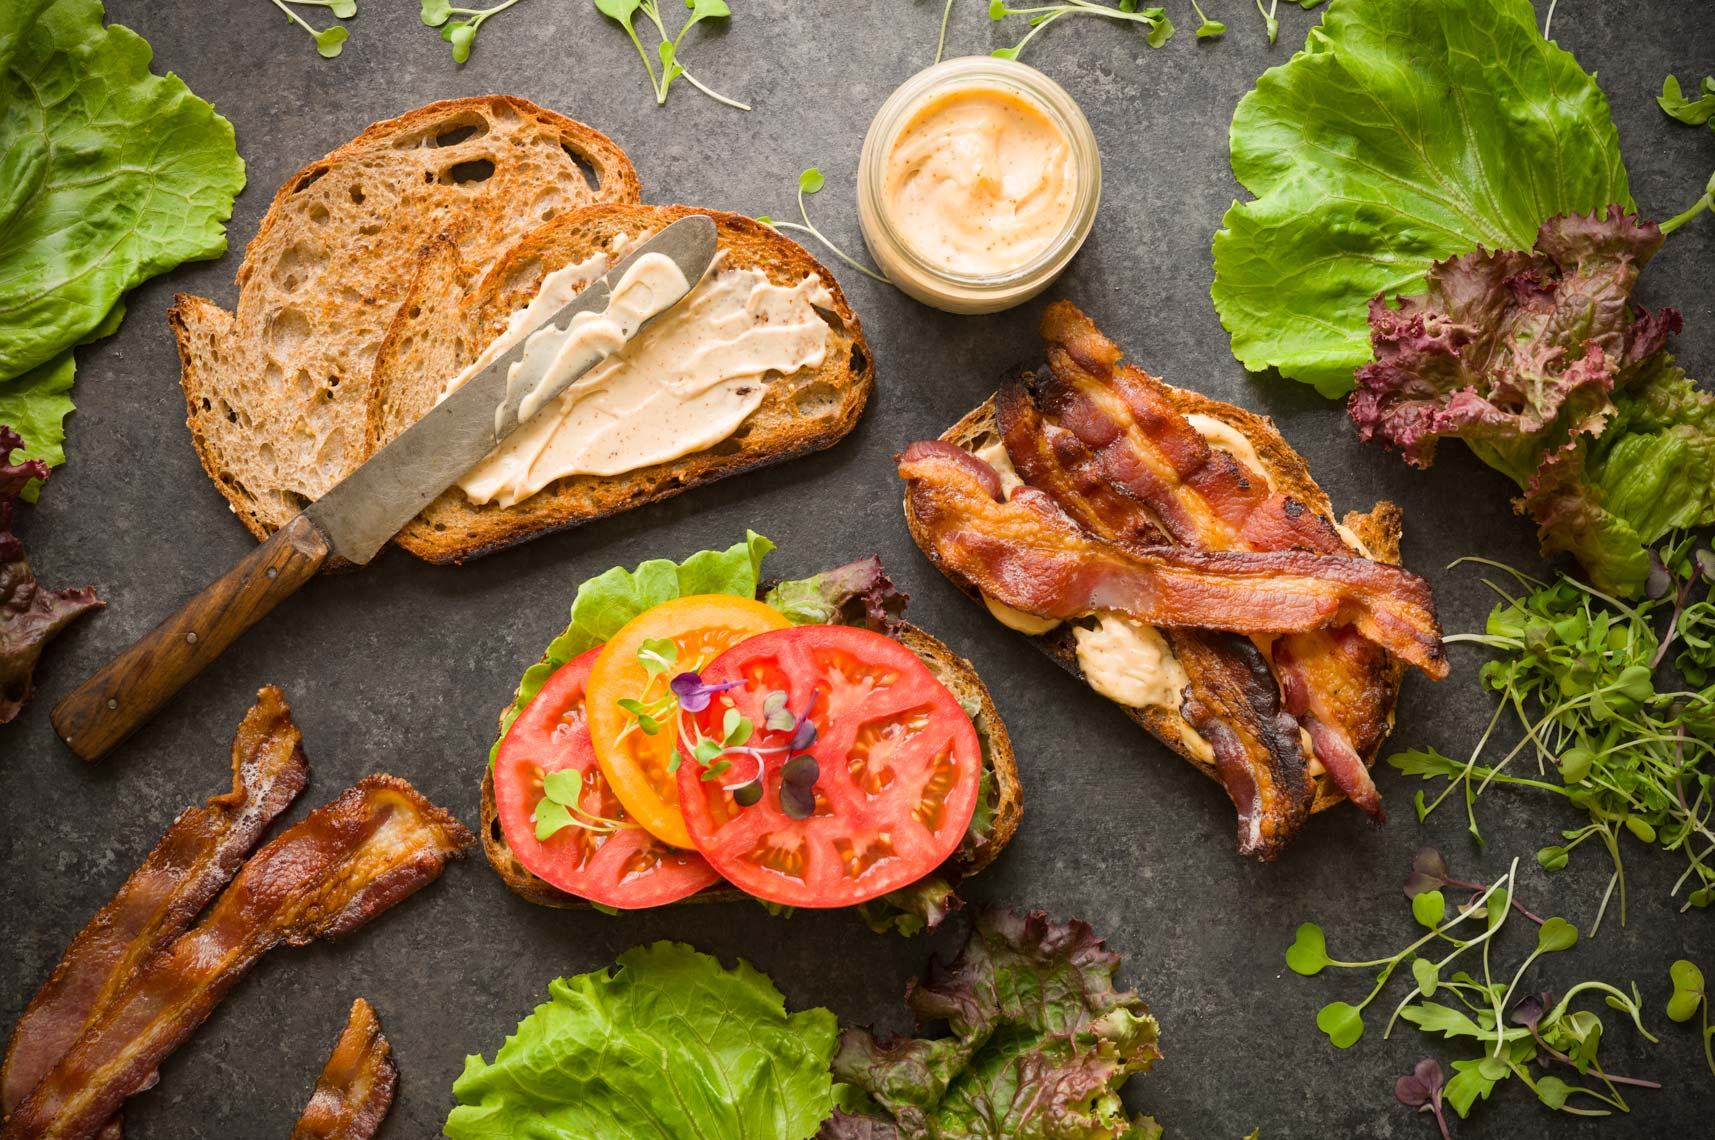 BLT Sandwiches - Food Photographer Bucks County, Pennsylvania